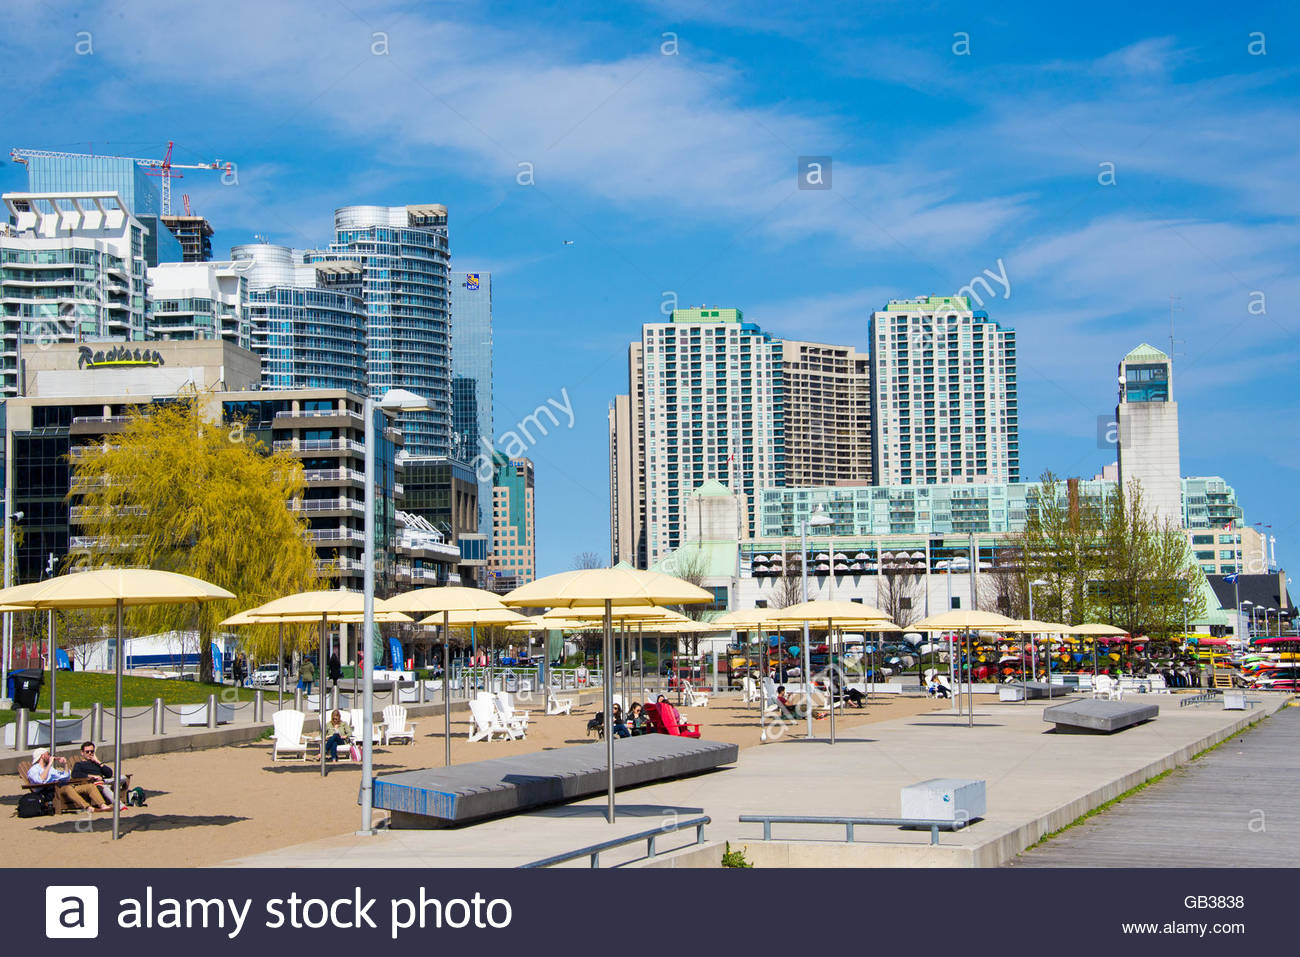 Toronto skyline: Beautiful modern architecturally designed skyscrapers seen from Toronto's harbour front. - Stock Image